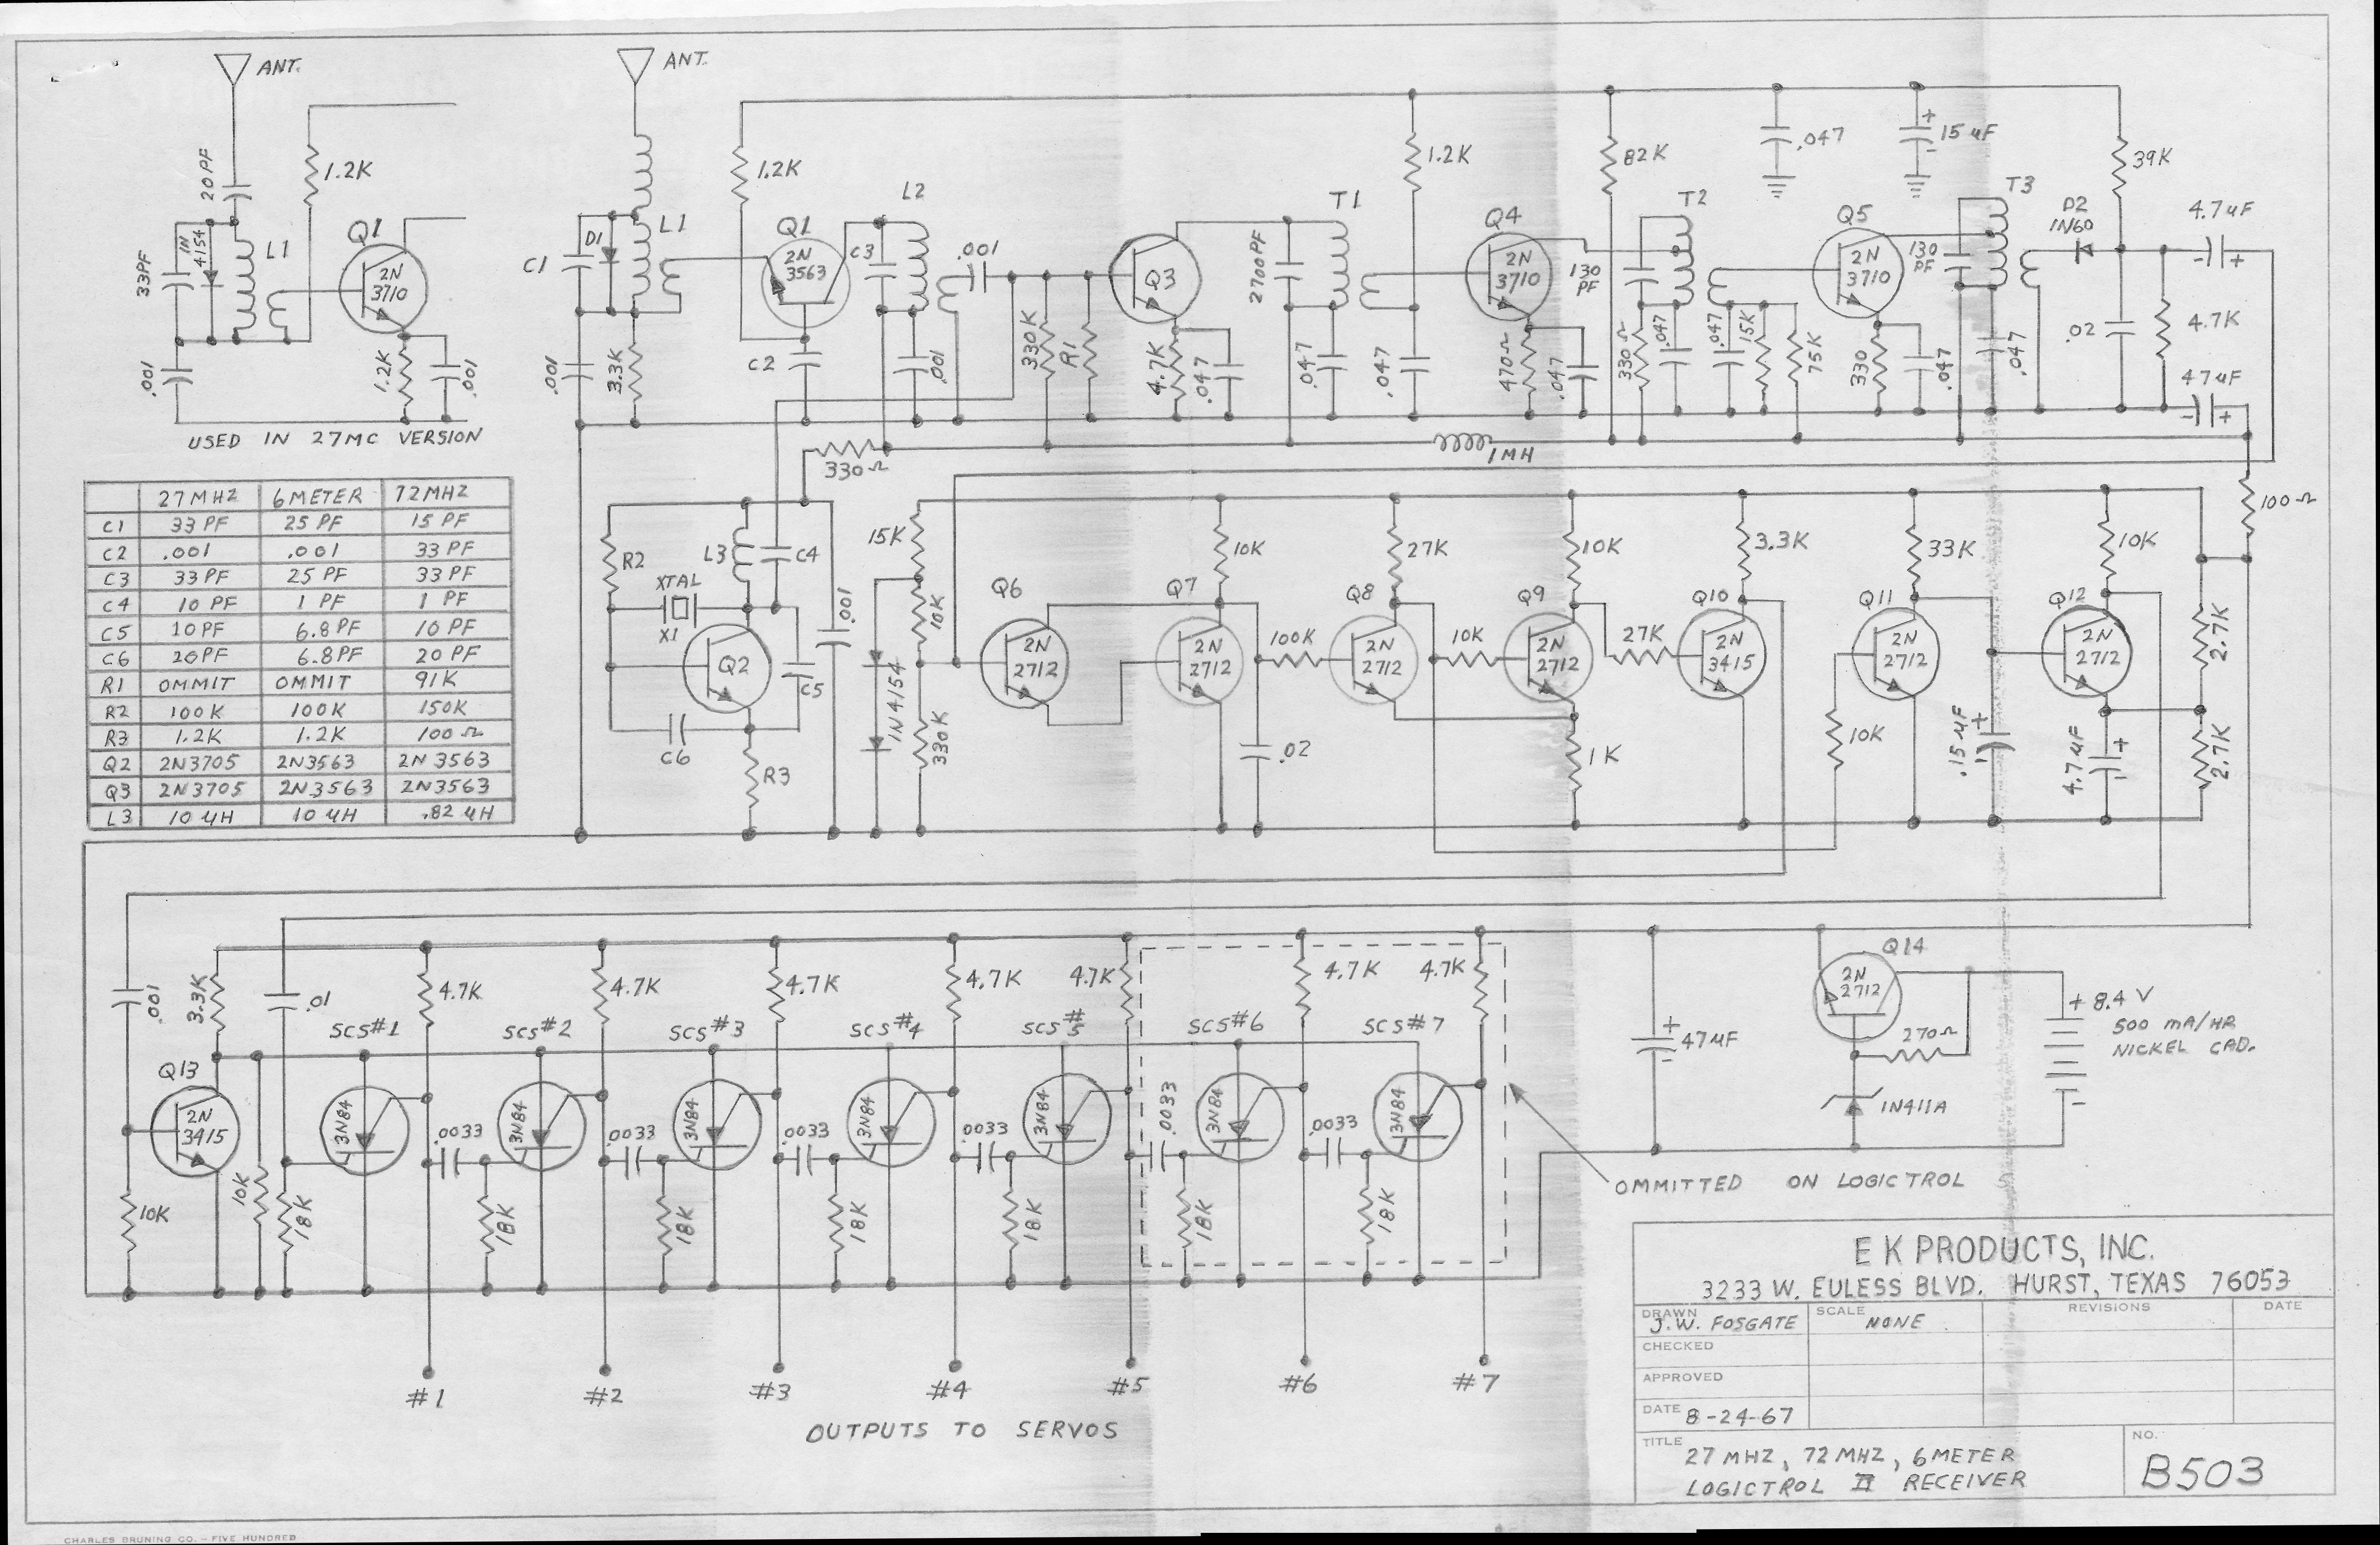 servo schematic with Ek 20products on 1525213 Technical Shift Kit Install Questions likewise Control unit moreover 20100507 hydraulic Bent Axis Motors likewise Engine codes agr ahf alh asv together with Index.